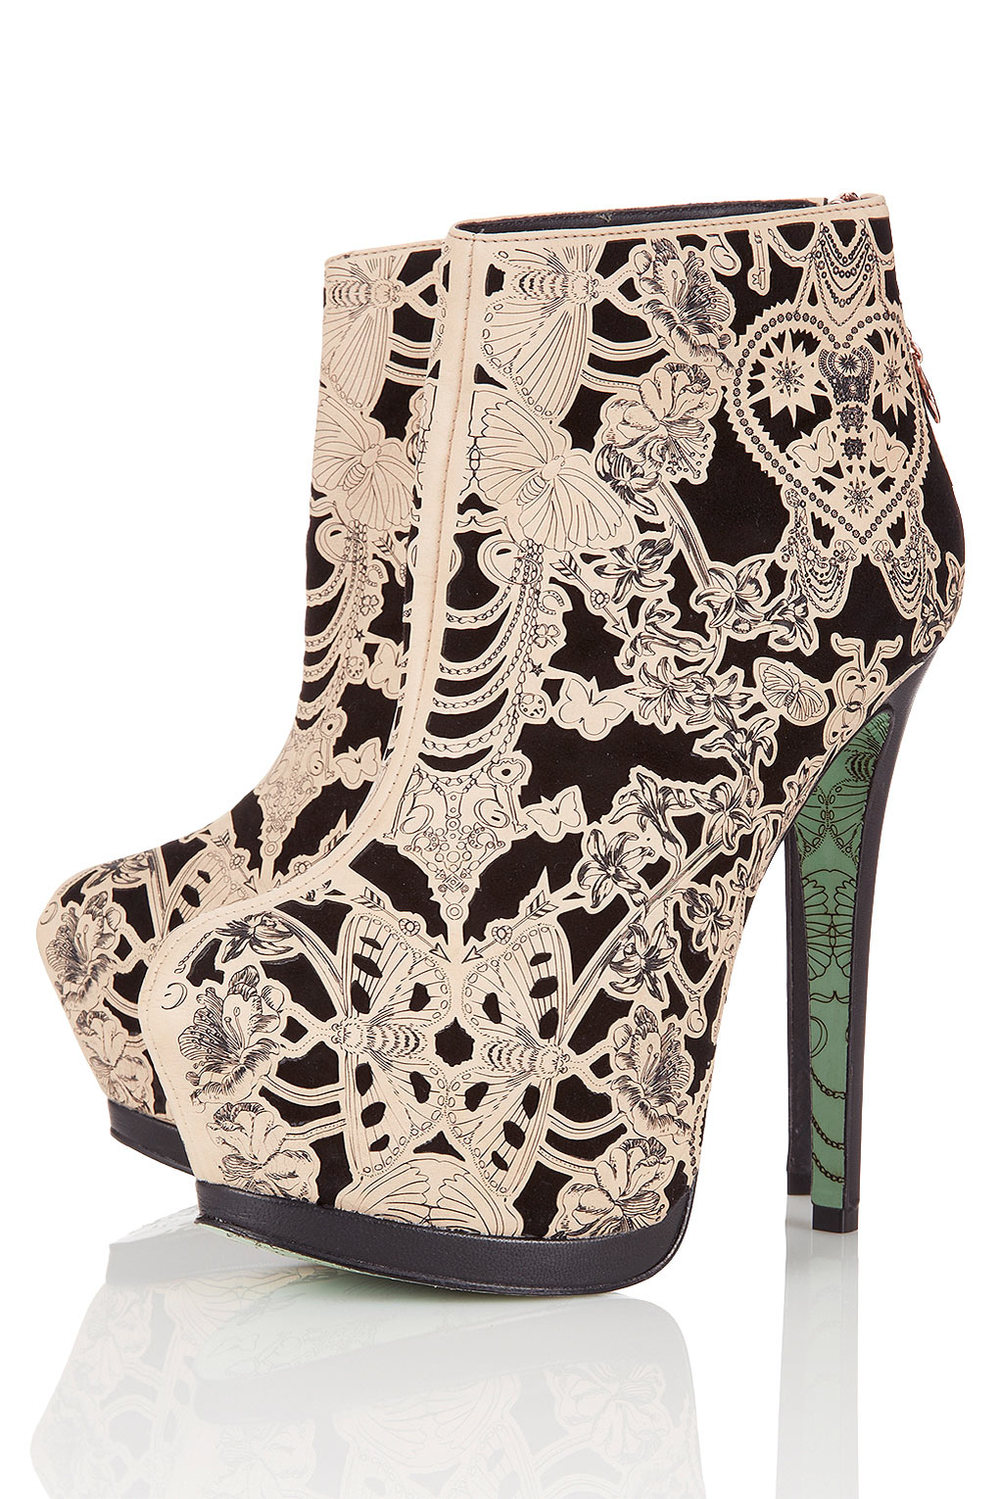 LACE WING ANKLE BOOTS BY CJG.jpg